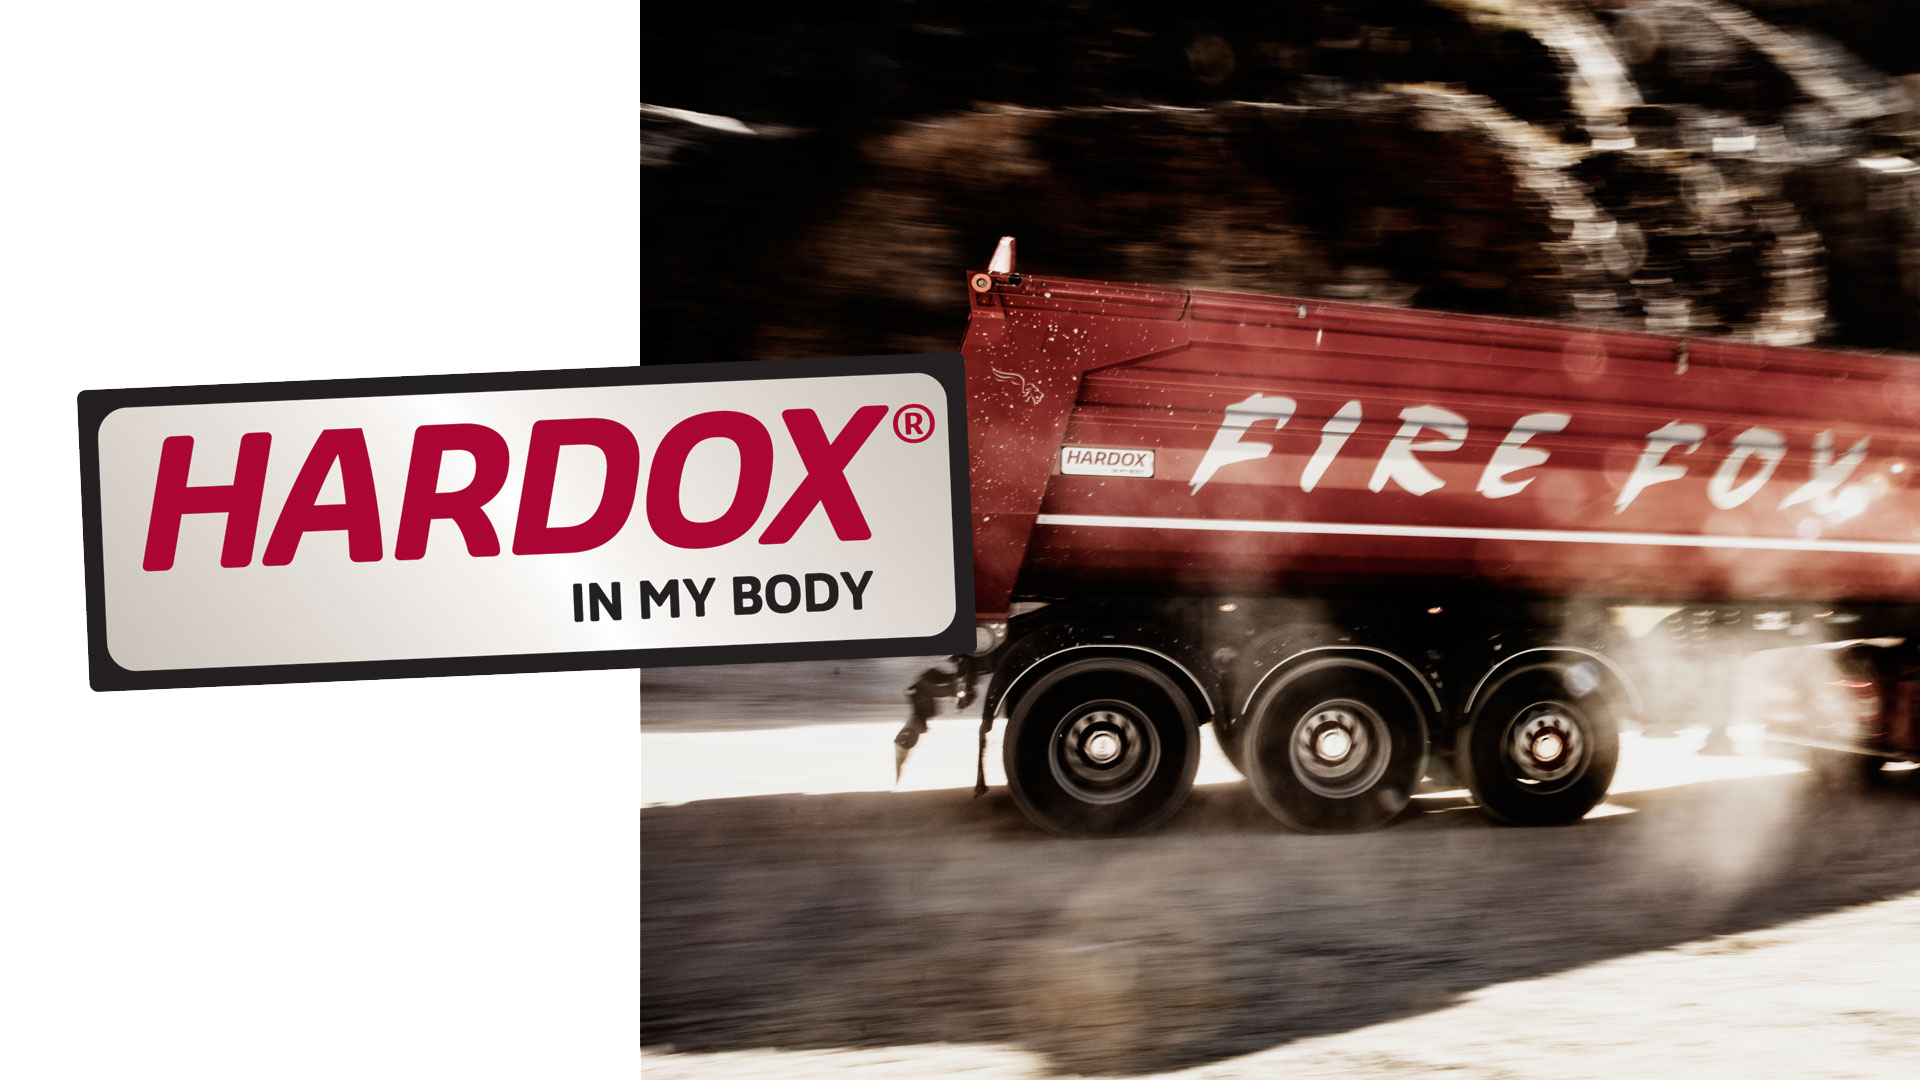 A fiery red Firefox truck body, made in Hardox® wear plate.